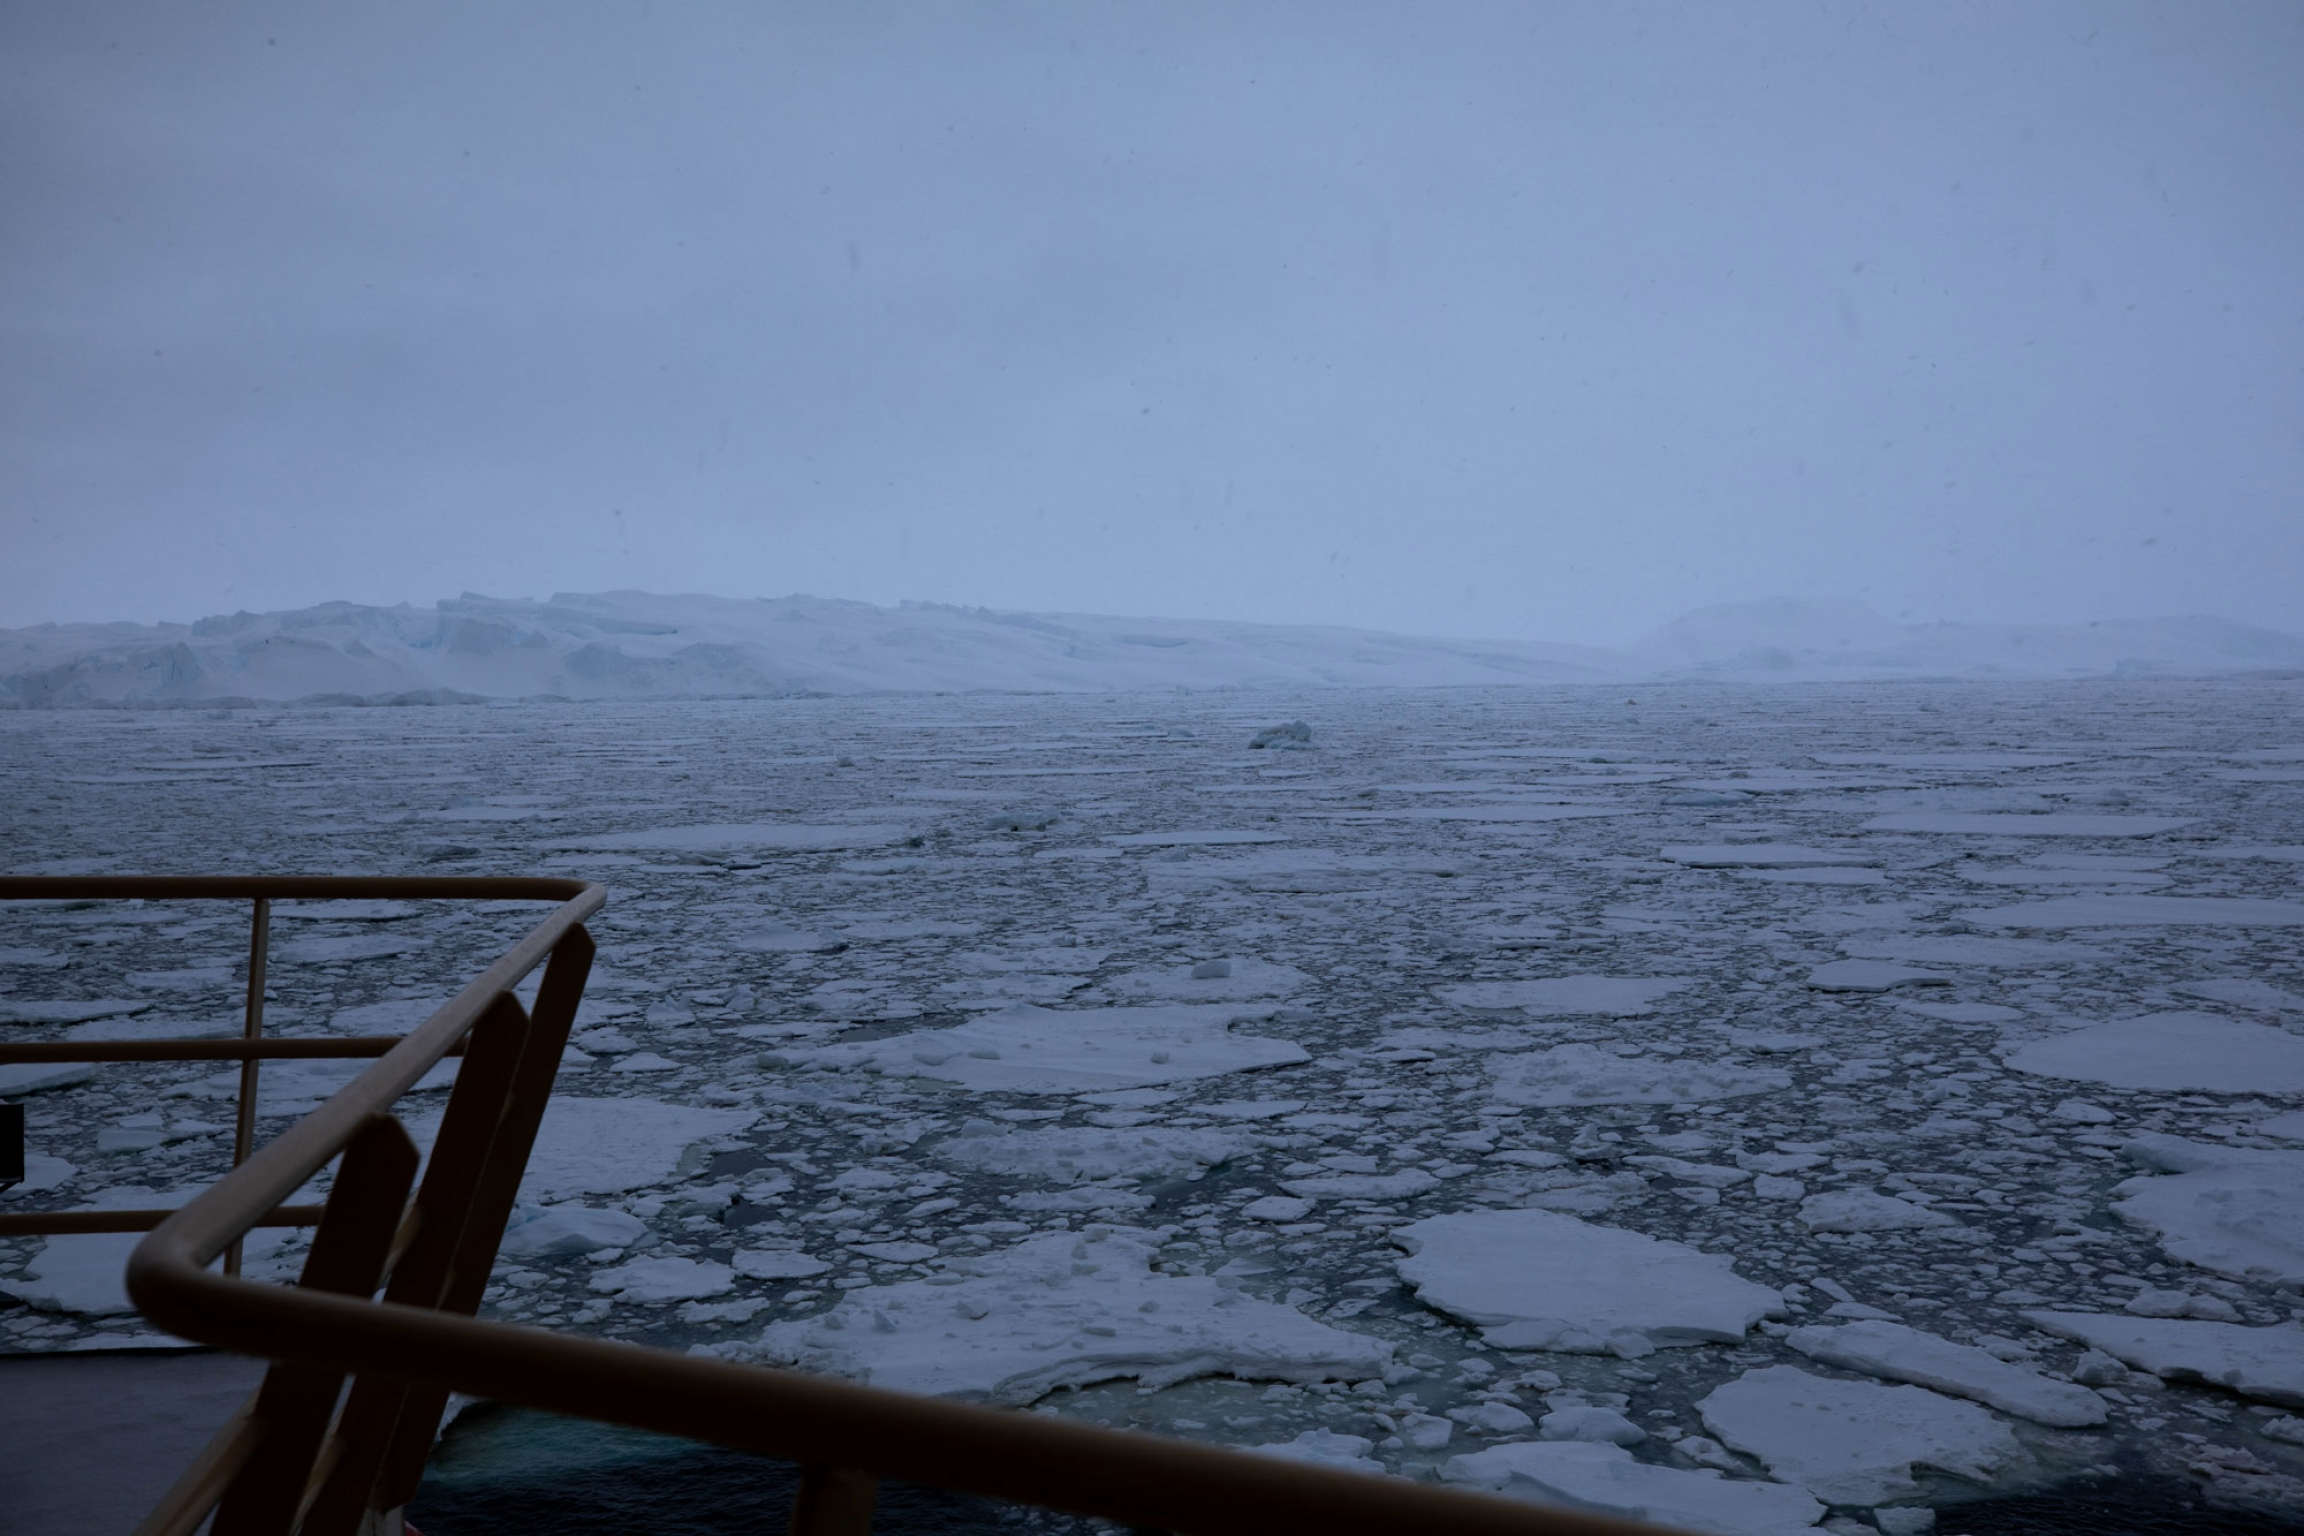 The brown railing of the research vessel is shown in the near ground with larger pancake ice formations in the Amundsen Sea.